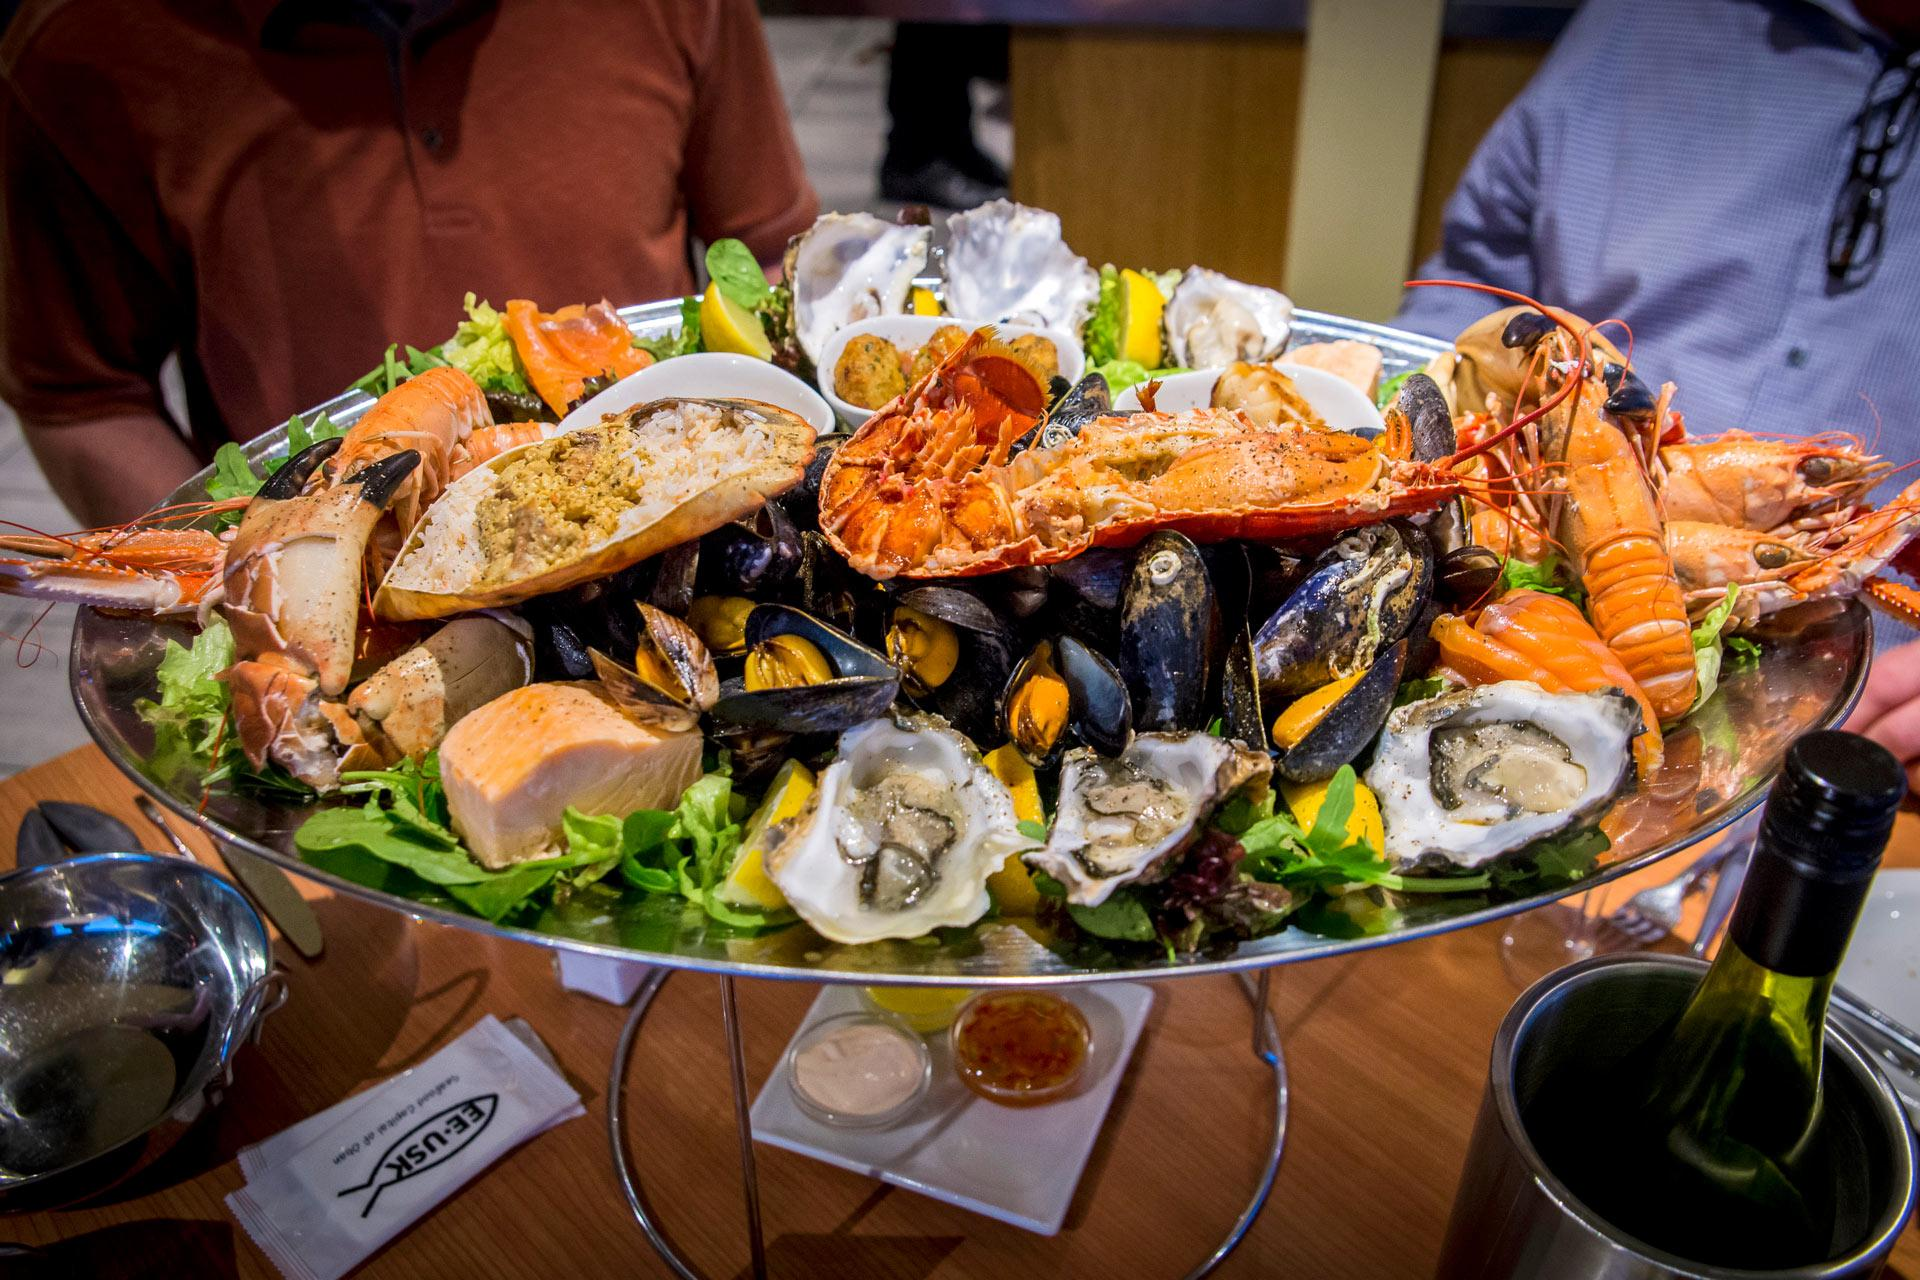 drink scotland seafood oban scottish platter traditional restaurant ee visitscotland usk famous themed standard source shack explore close